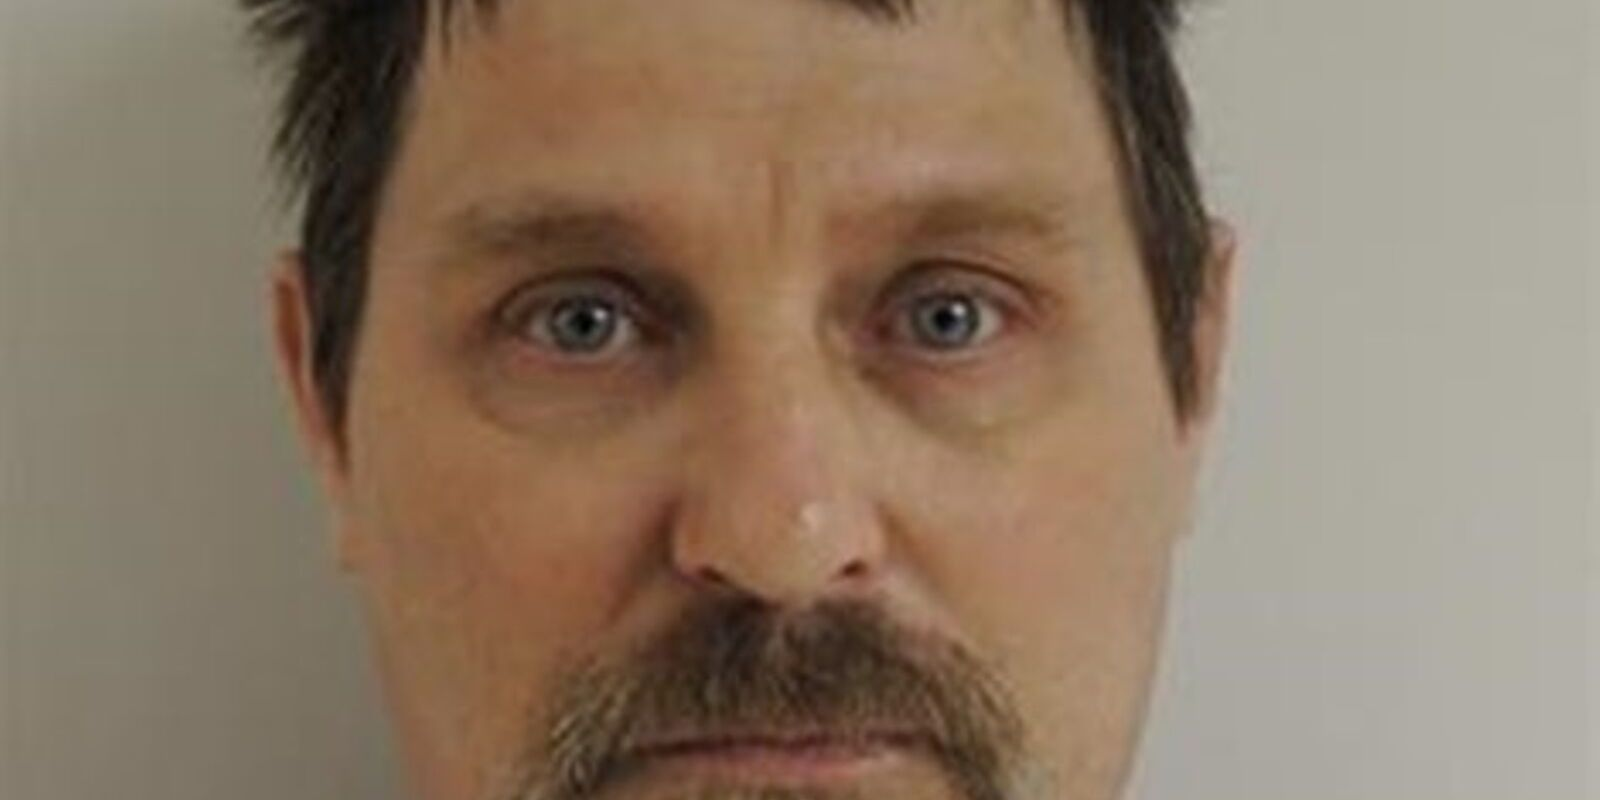 High-risk sex offender released in Halifax — police issue warning